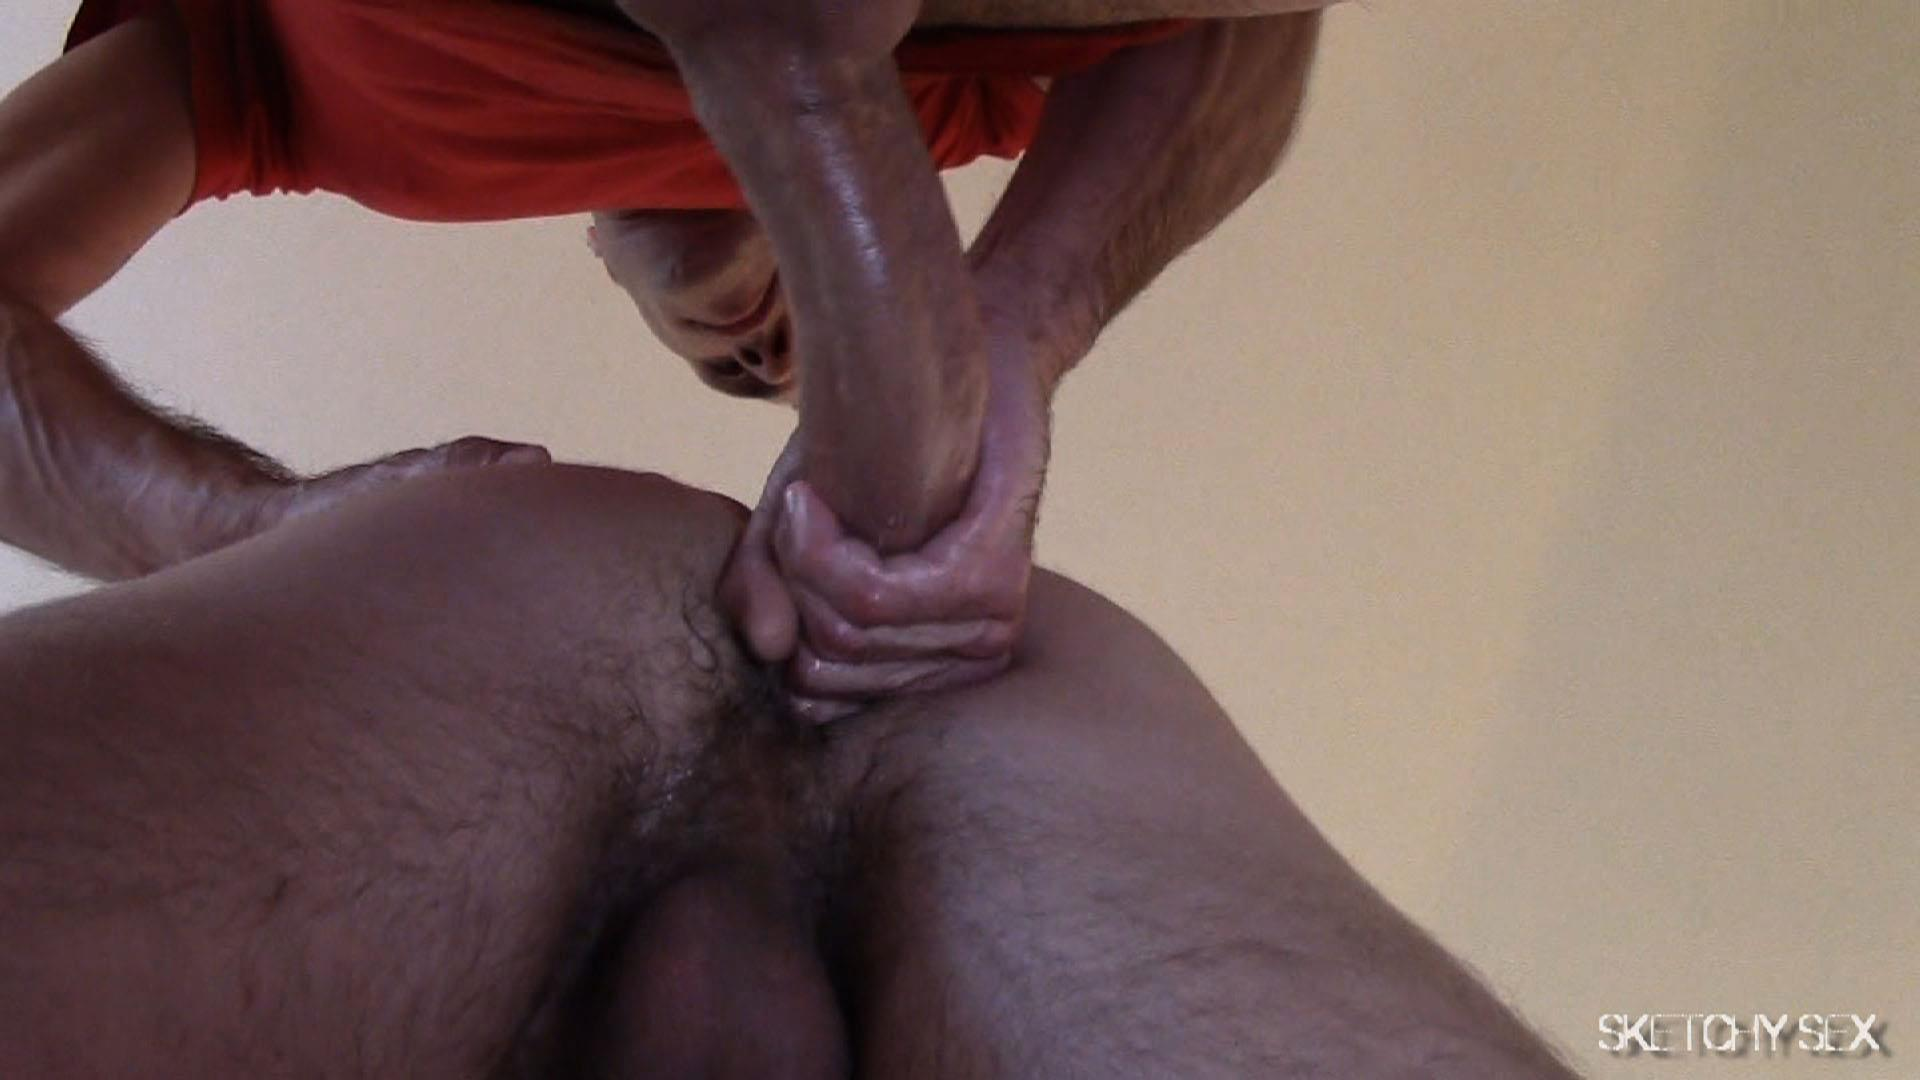 "Sketchy Sex Nate Getting Fucked Bareback By A 10 Inch Craigslist Cock Amateur Gay Porn 08 Taking A 10"" Craigslist Cock Bareback While The Roommate Watches"